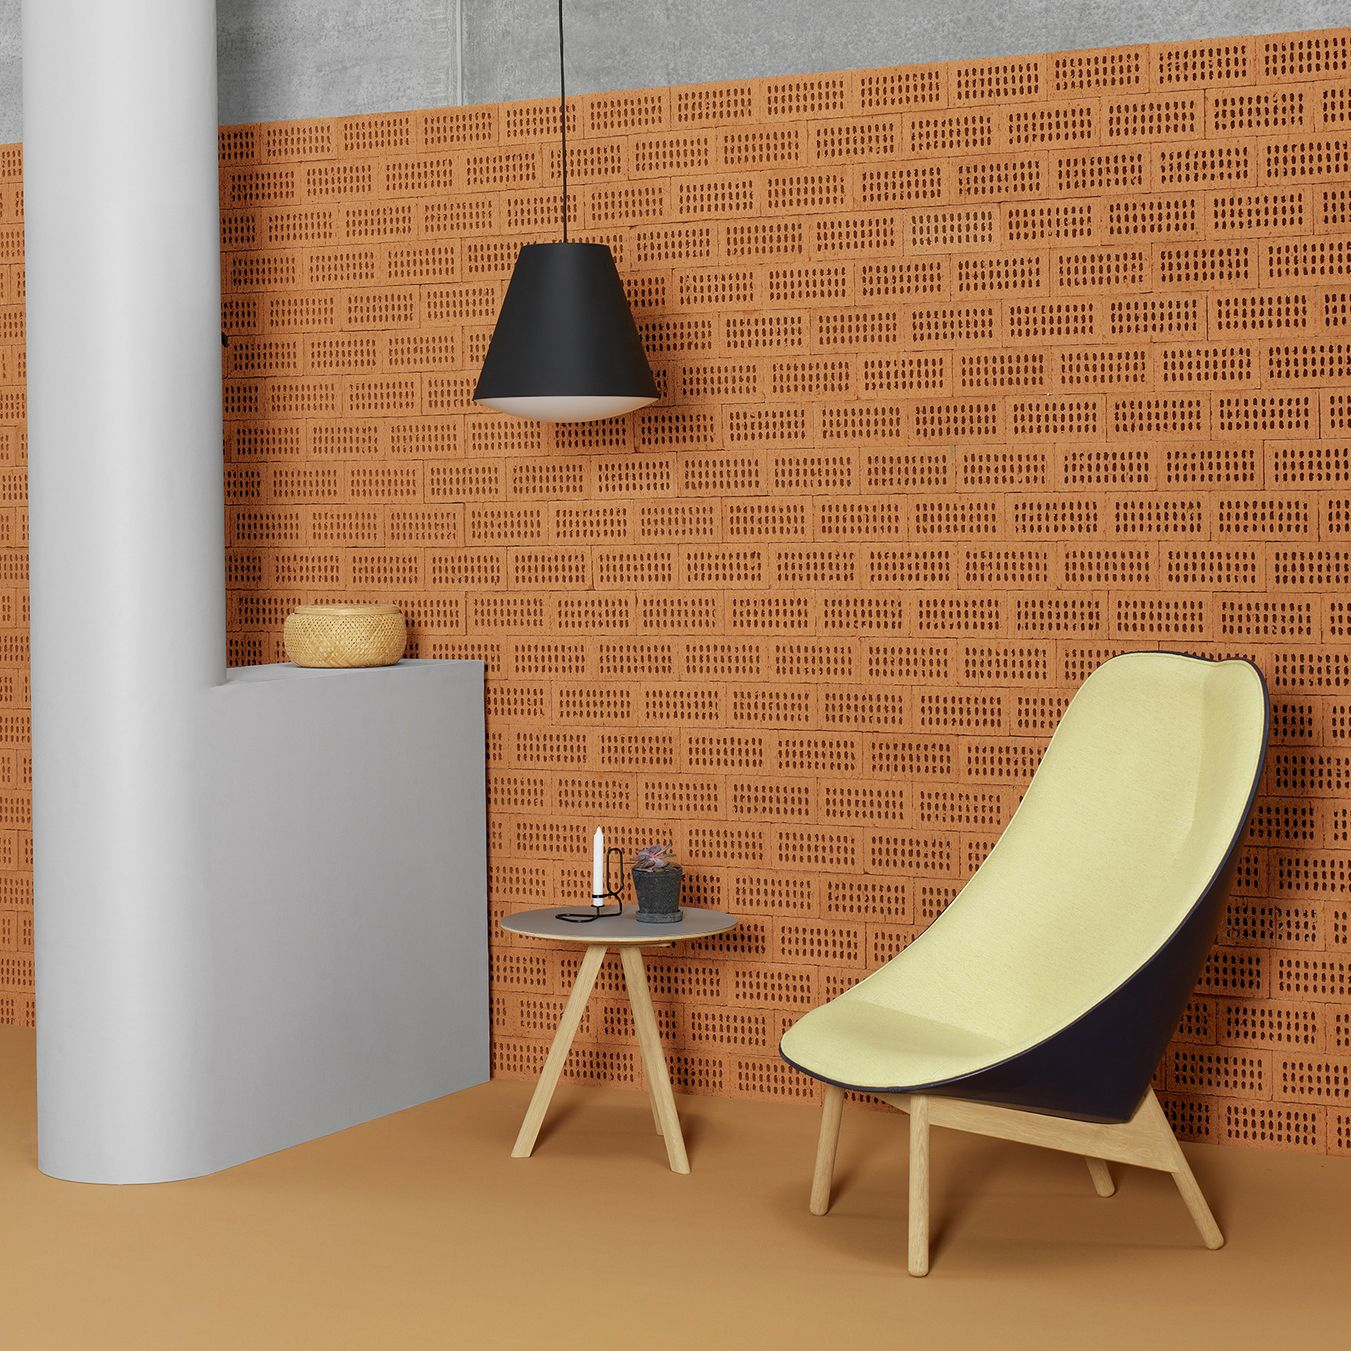 Delightful Uchiwa Lounge Chair, Designed By Doshi Levien For HAY. Also In Picture:  Sinker Amazing Design